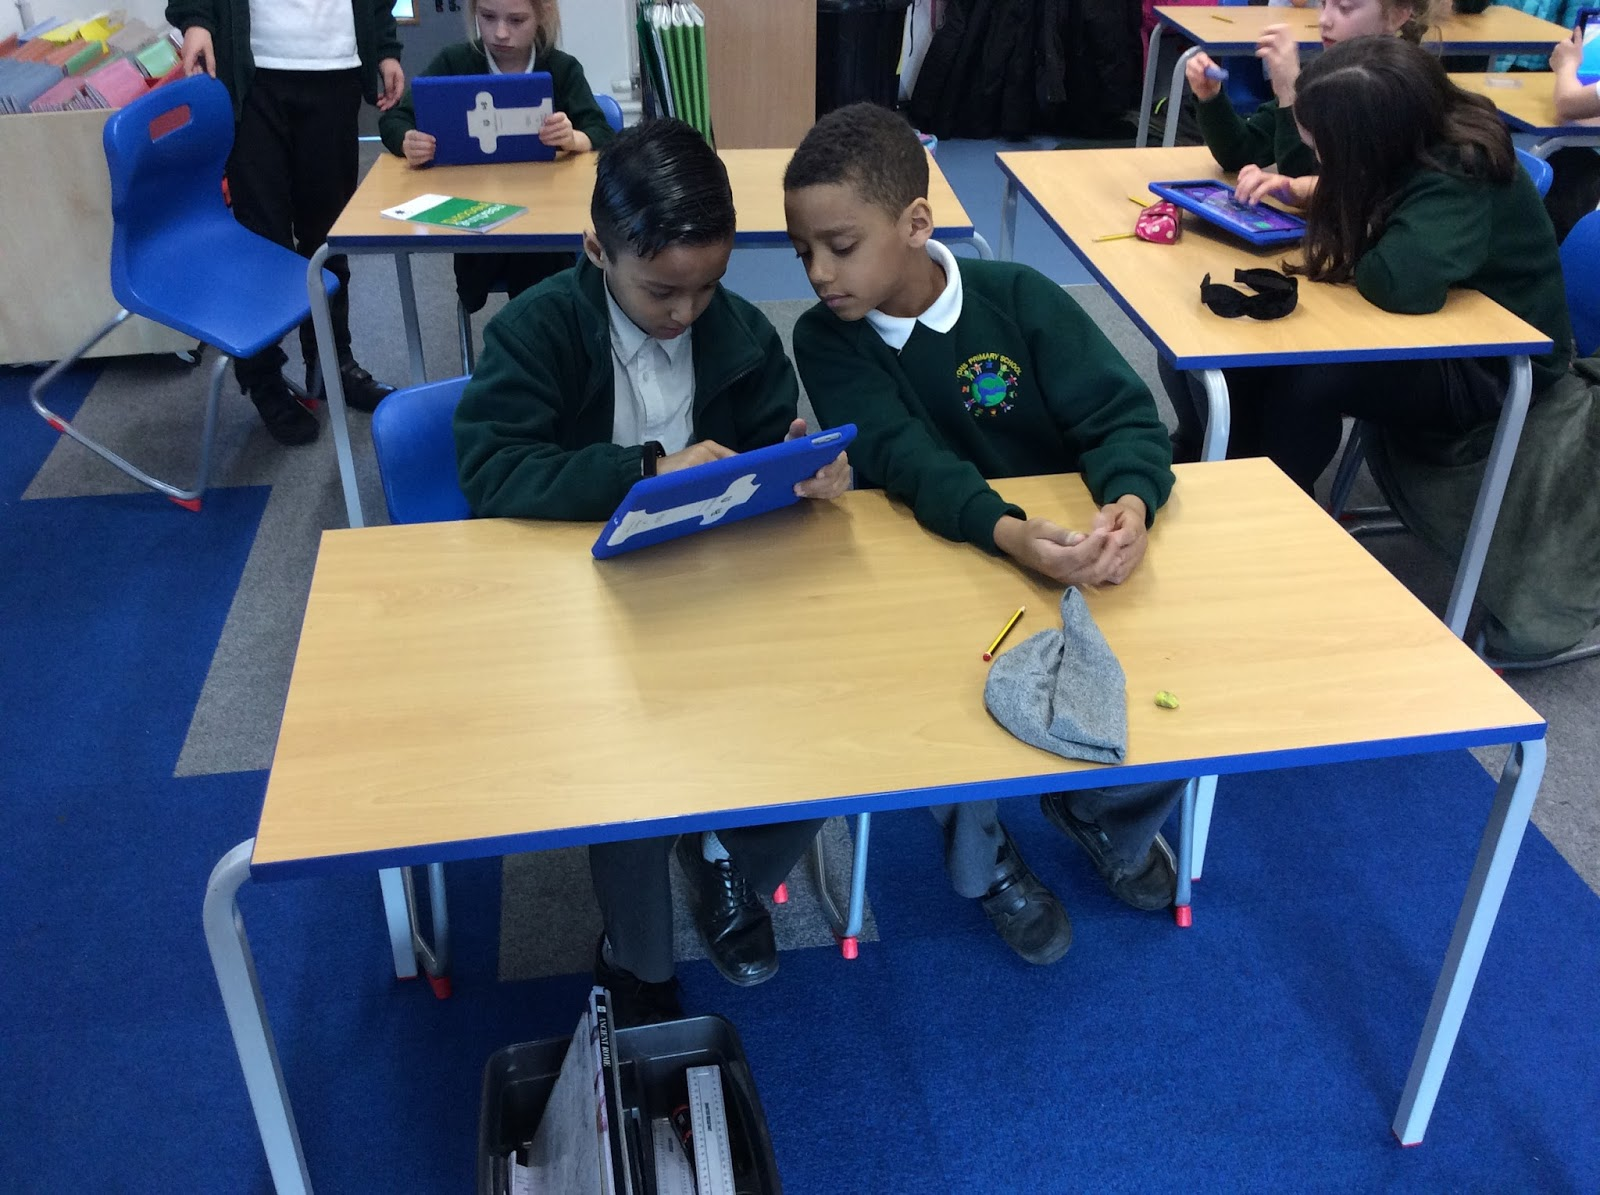 Suttons Primary School: Year 4 Mathletics Session